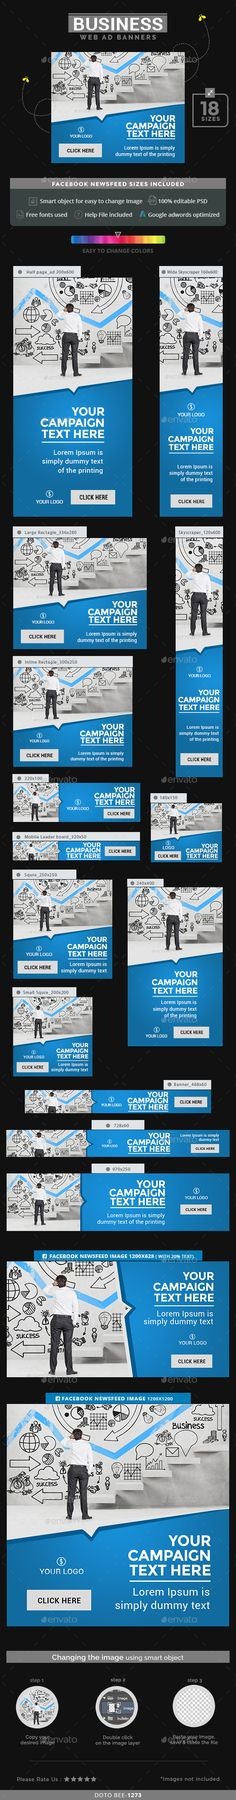 """Business Web Banners Template PSD. Download here: <a href=""""http://graphicriver.net/item/business-banners/15657968?ref=ksioks"""" rel=""""nofollow"""" target=""""_blank"""">graphicriver.net/...</a>"""